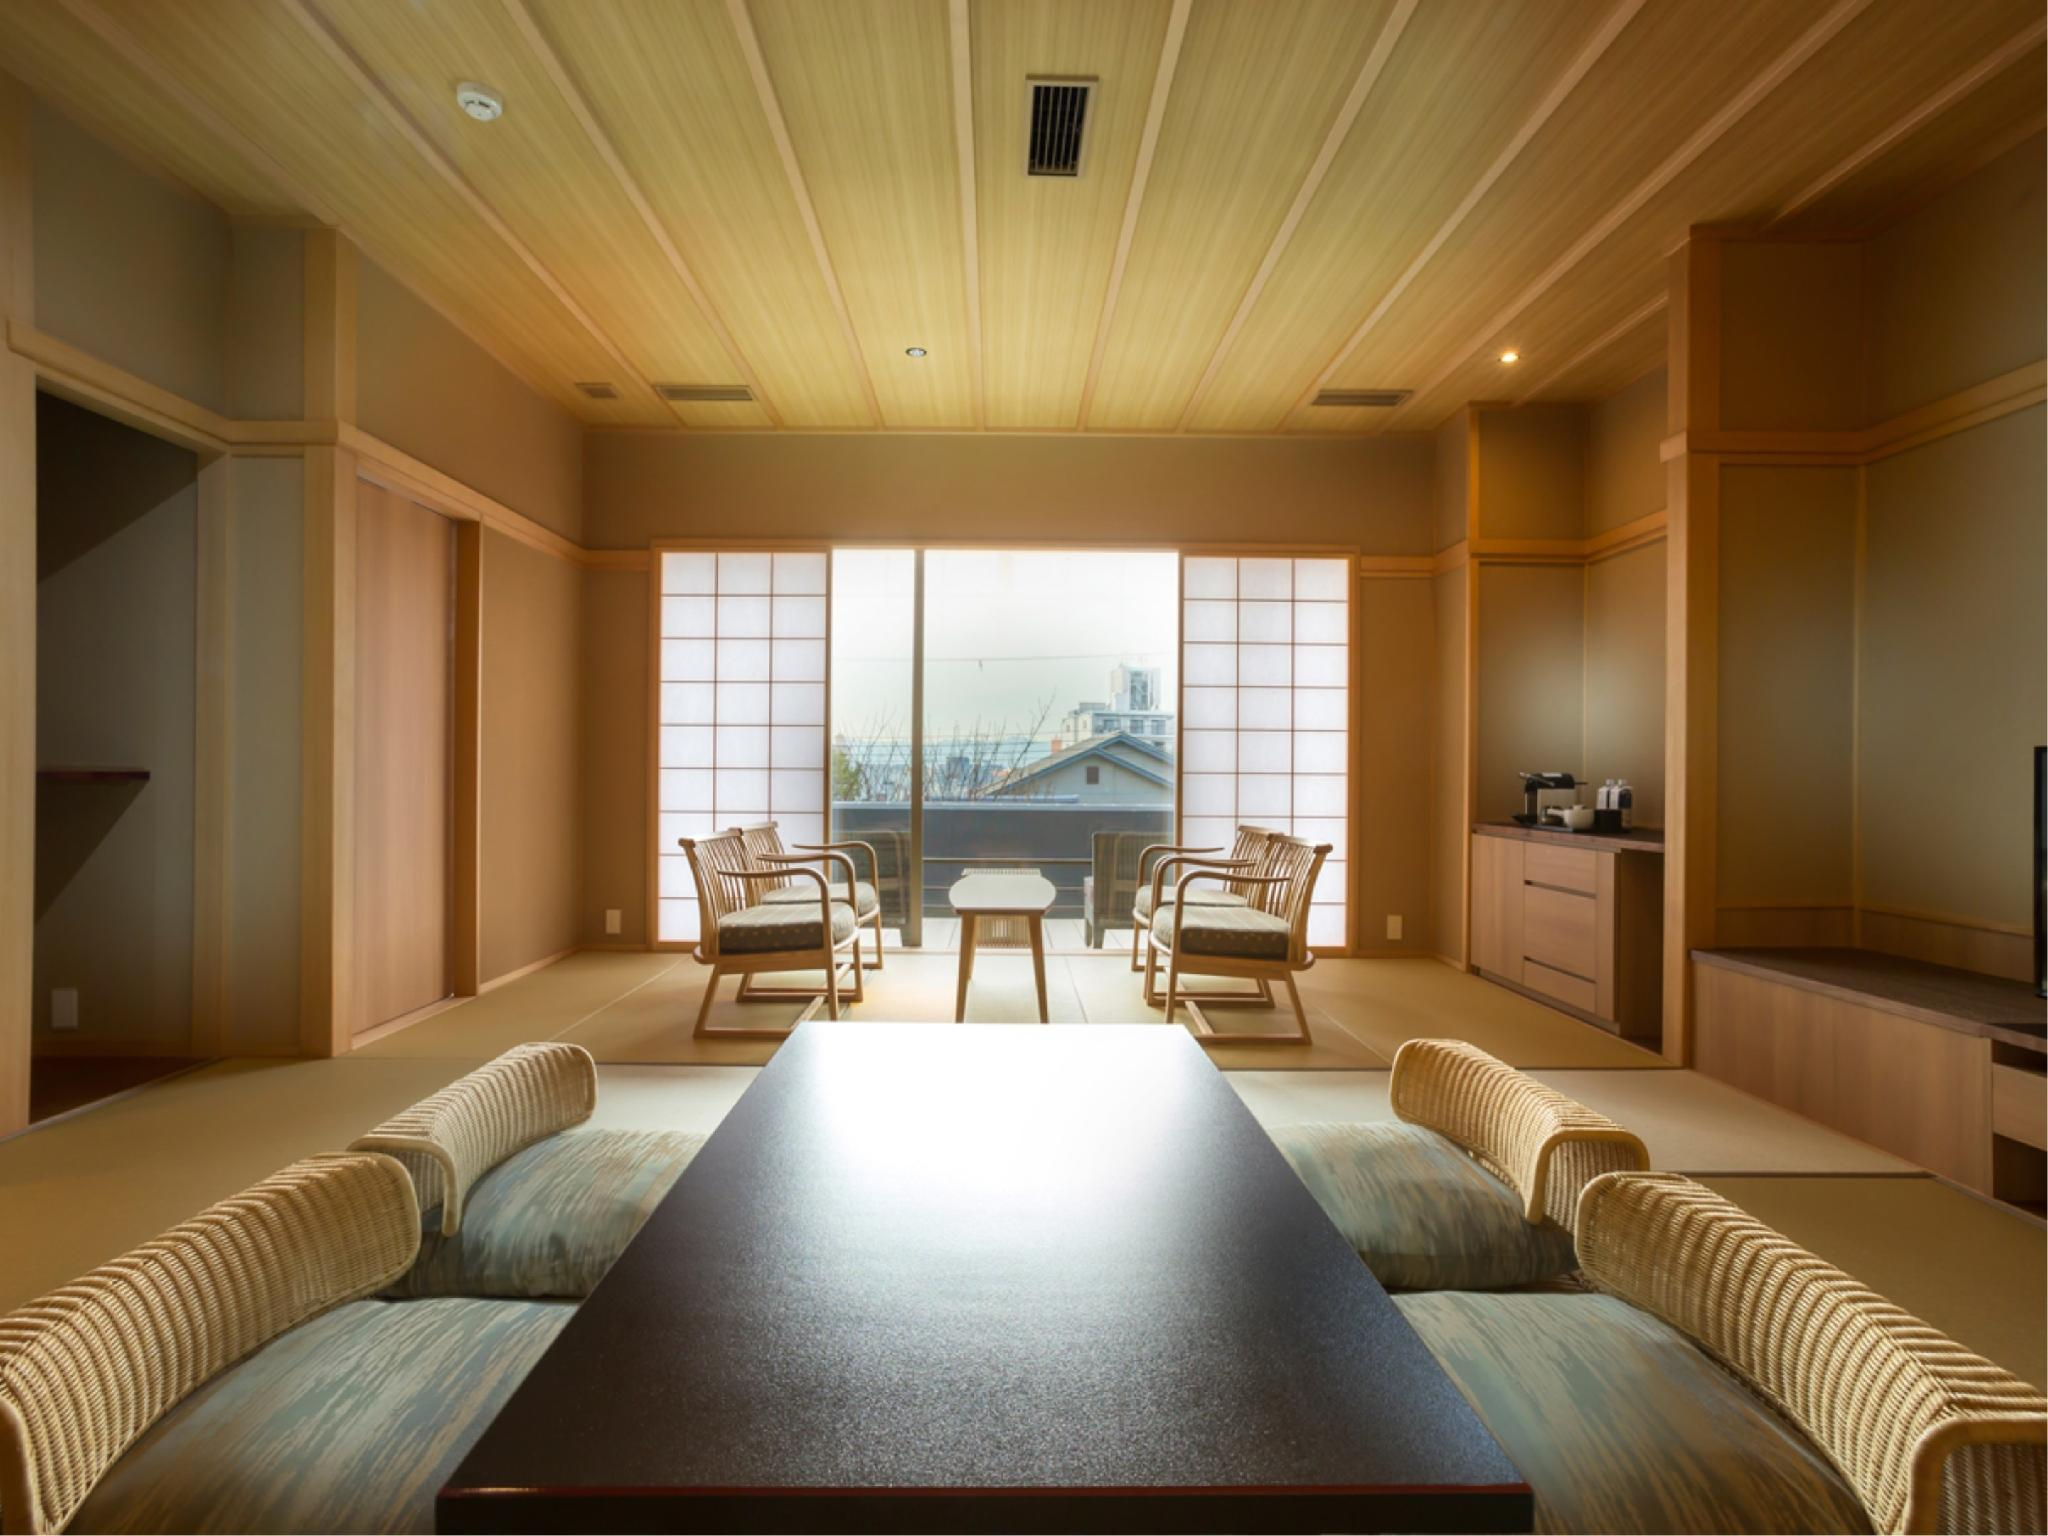 다다미 객실(테라스) (64sqm Japanese Style Room with Terrace)